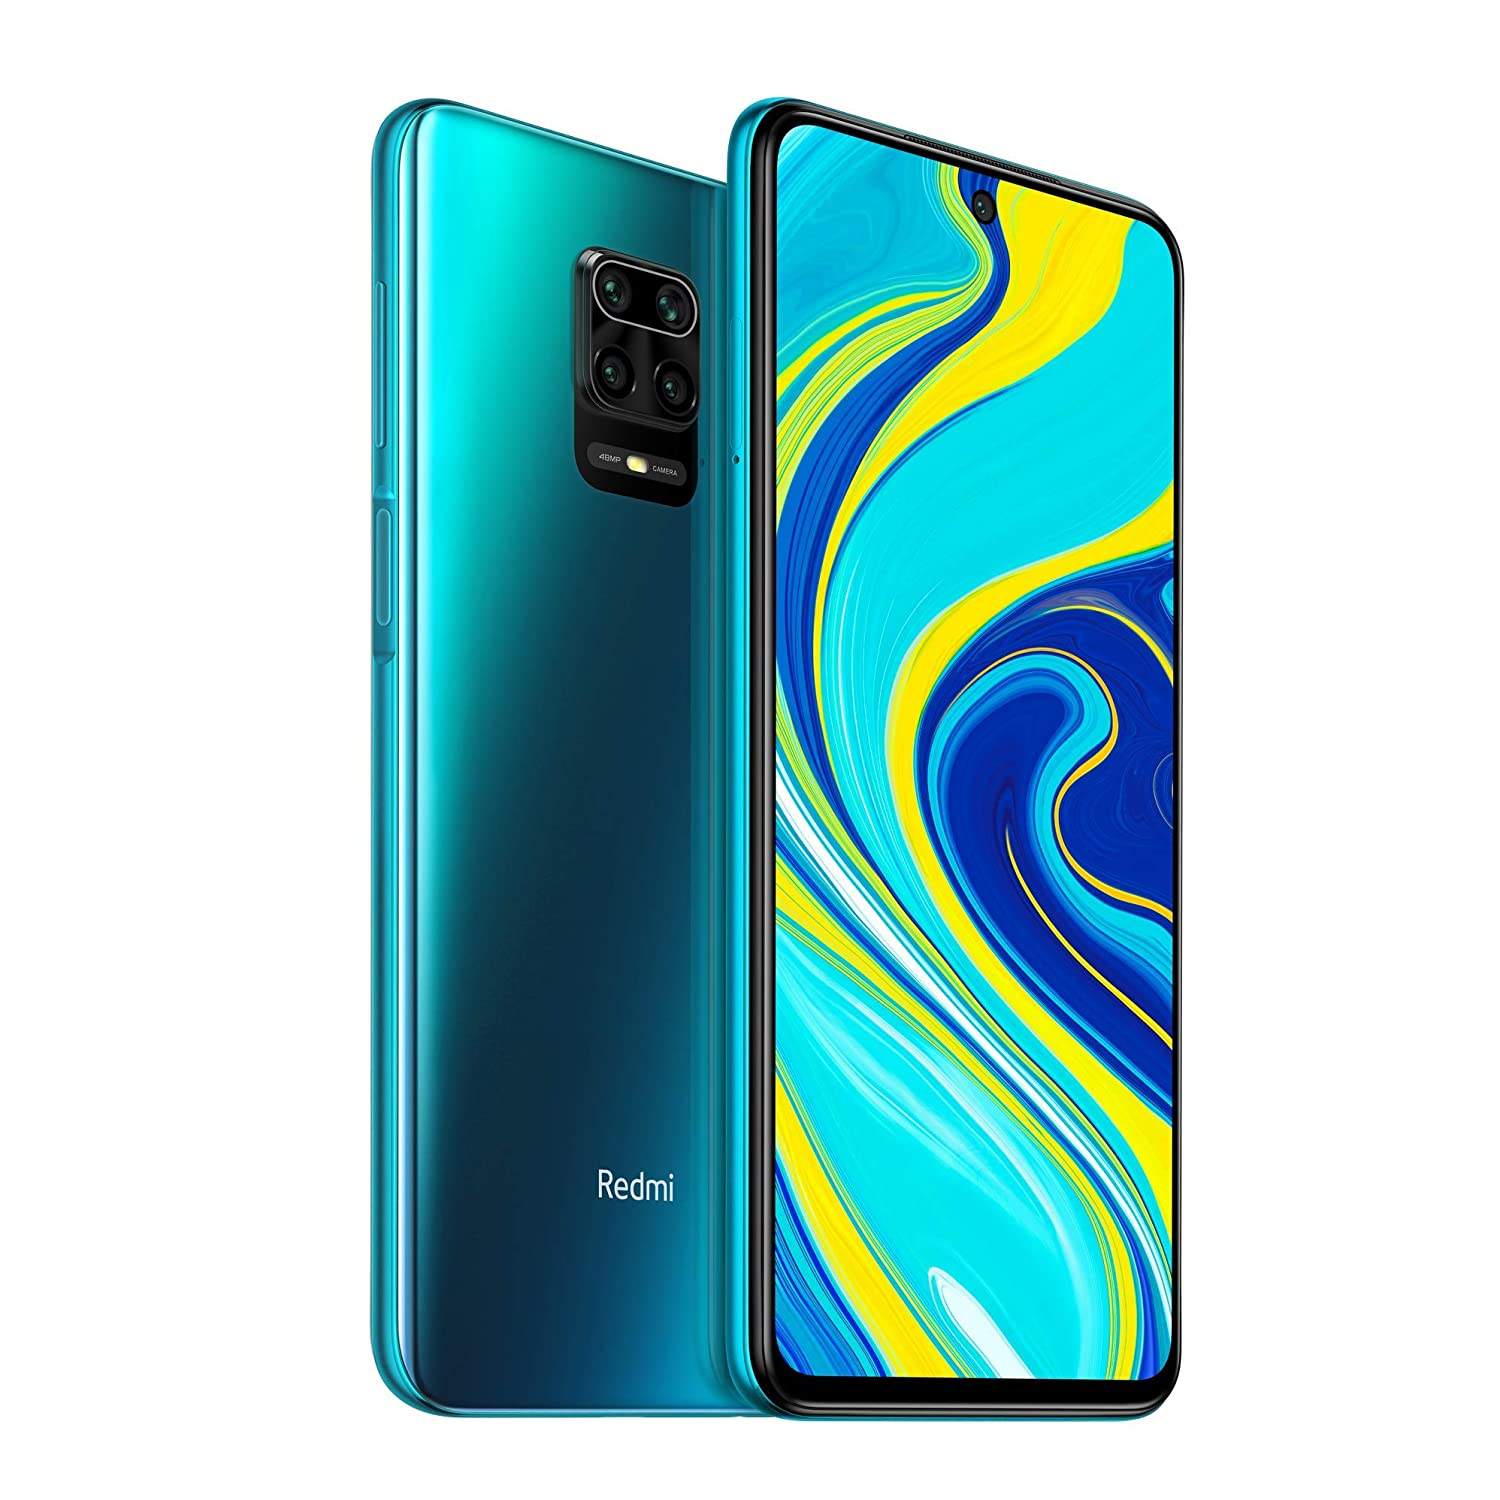 Xiaomi Redmi Note 9 Pro - Latest Snapdragon 720G & Gorilla Glass 5 Protection